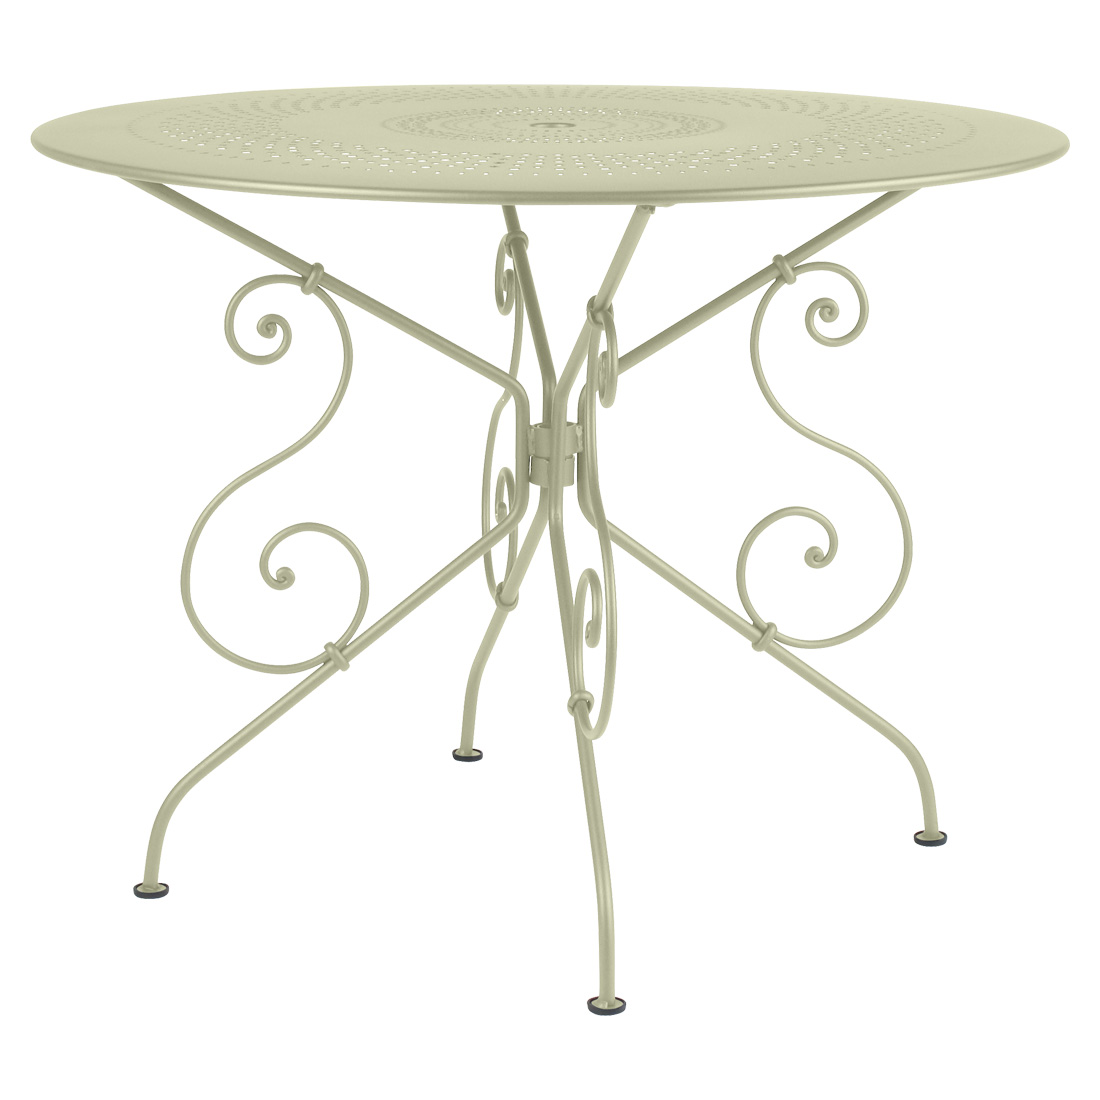 1900 Table 96cm - Willow Green